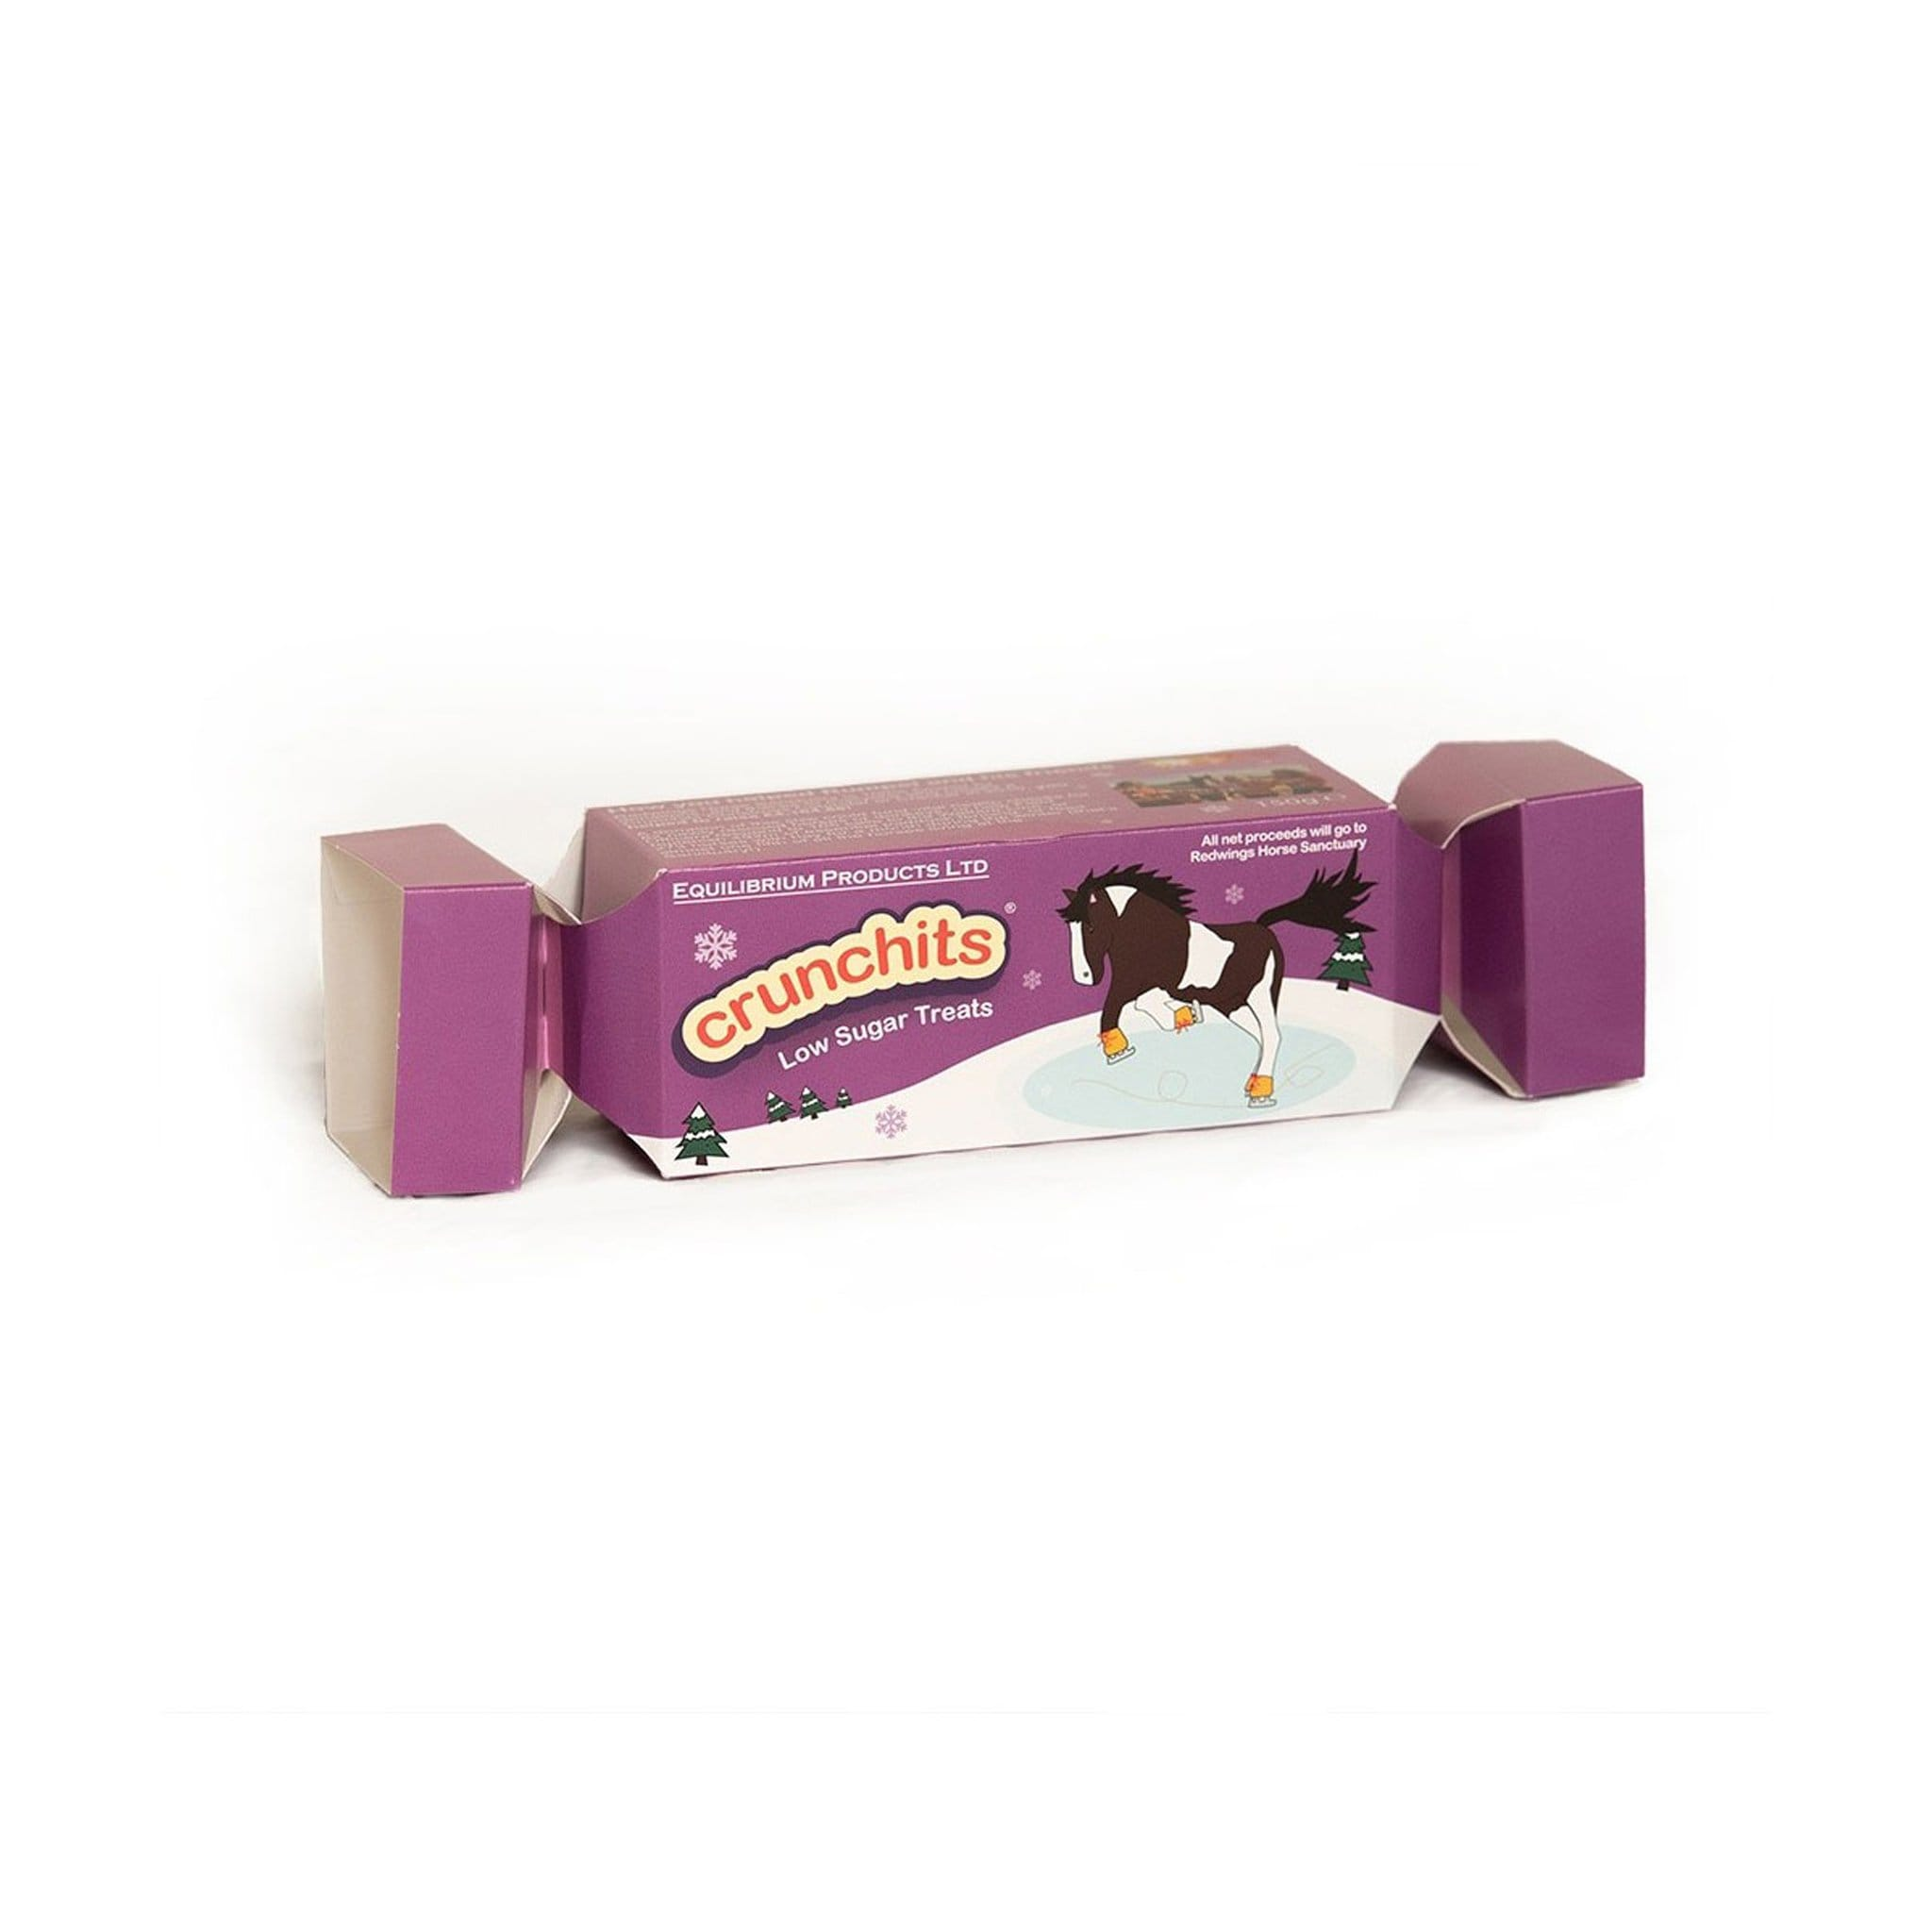 Equilibrium Crunchits Christmas Cracker 26458